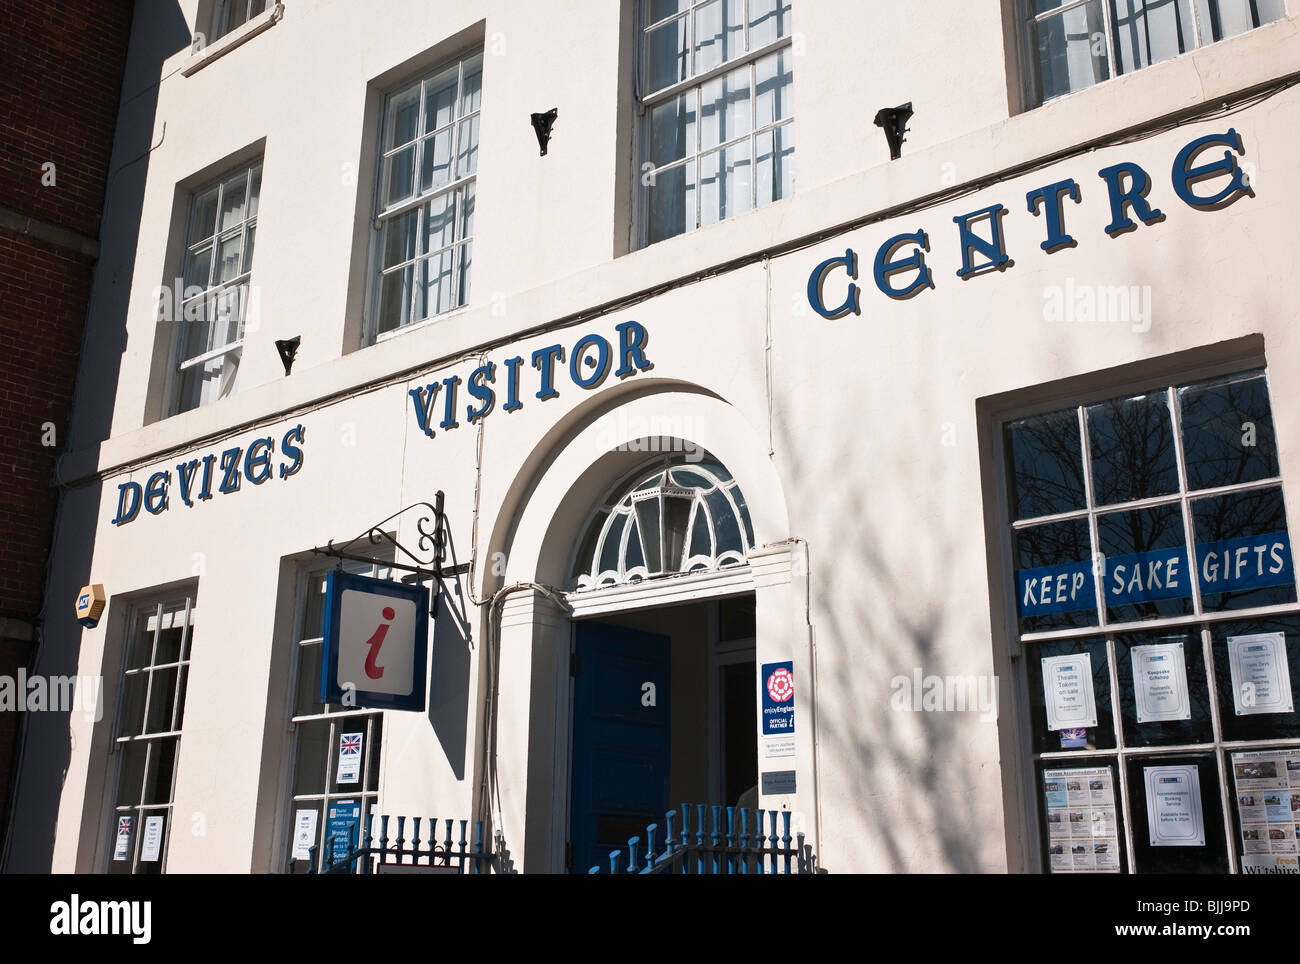 Devizes Visitor Centre in Wiltshire England UK EU - Stock Image